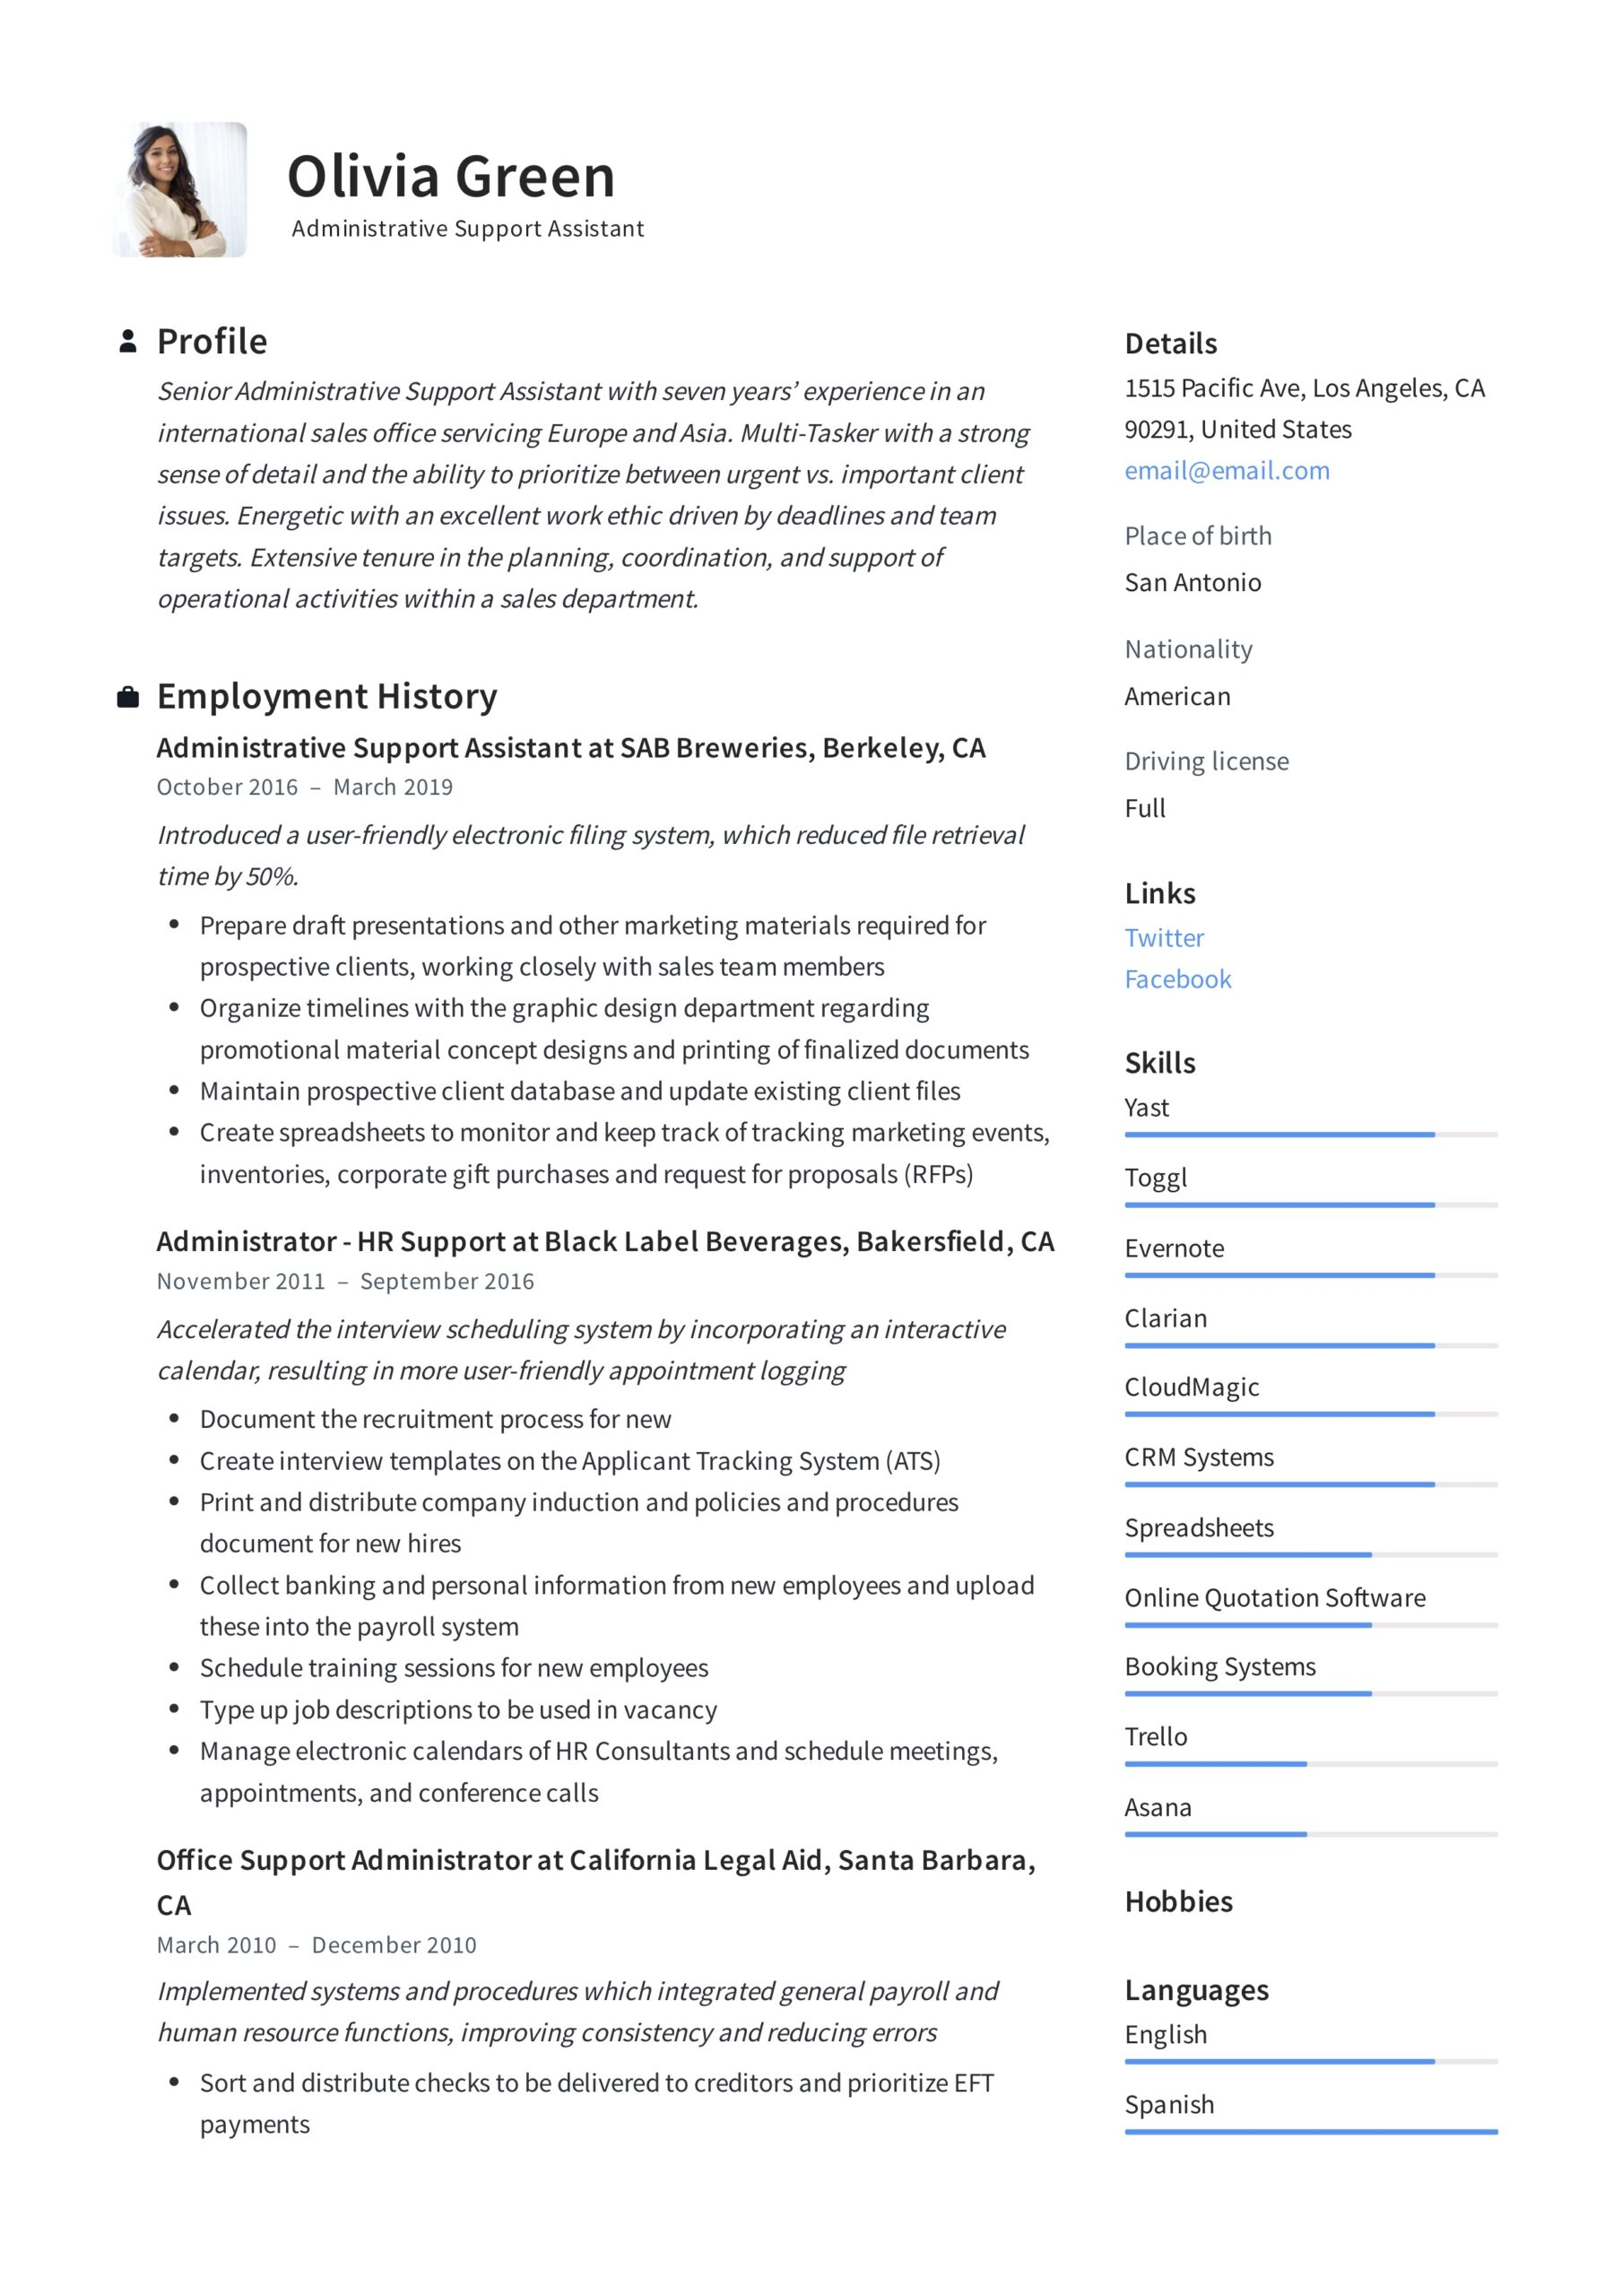 administrative support assistant resume guide pdf resumes keywords for executive olivia Resume Keywords For Executive Assistant Resume